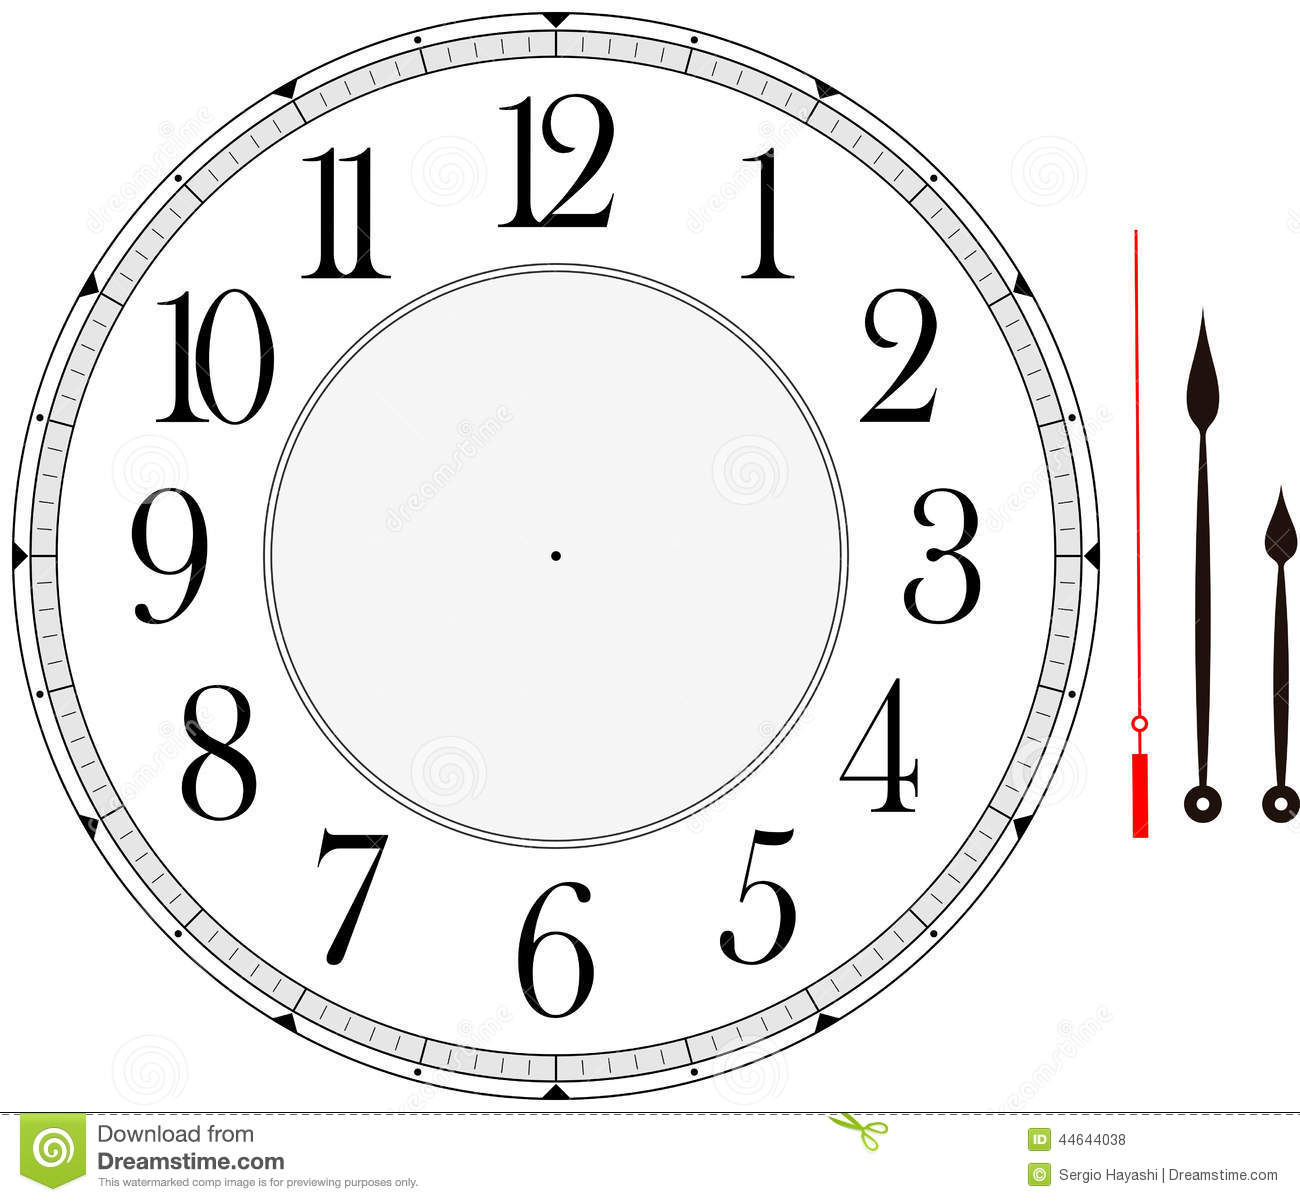 Clock Face Stock Vector. Illustration Of Vector, Hour - 44644038 - Free Printable Clock Faces